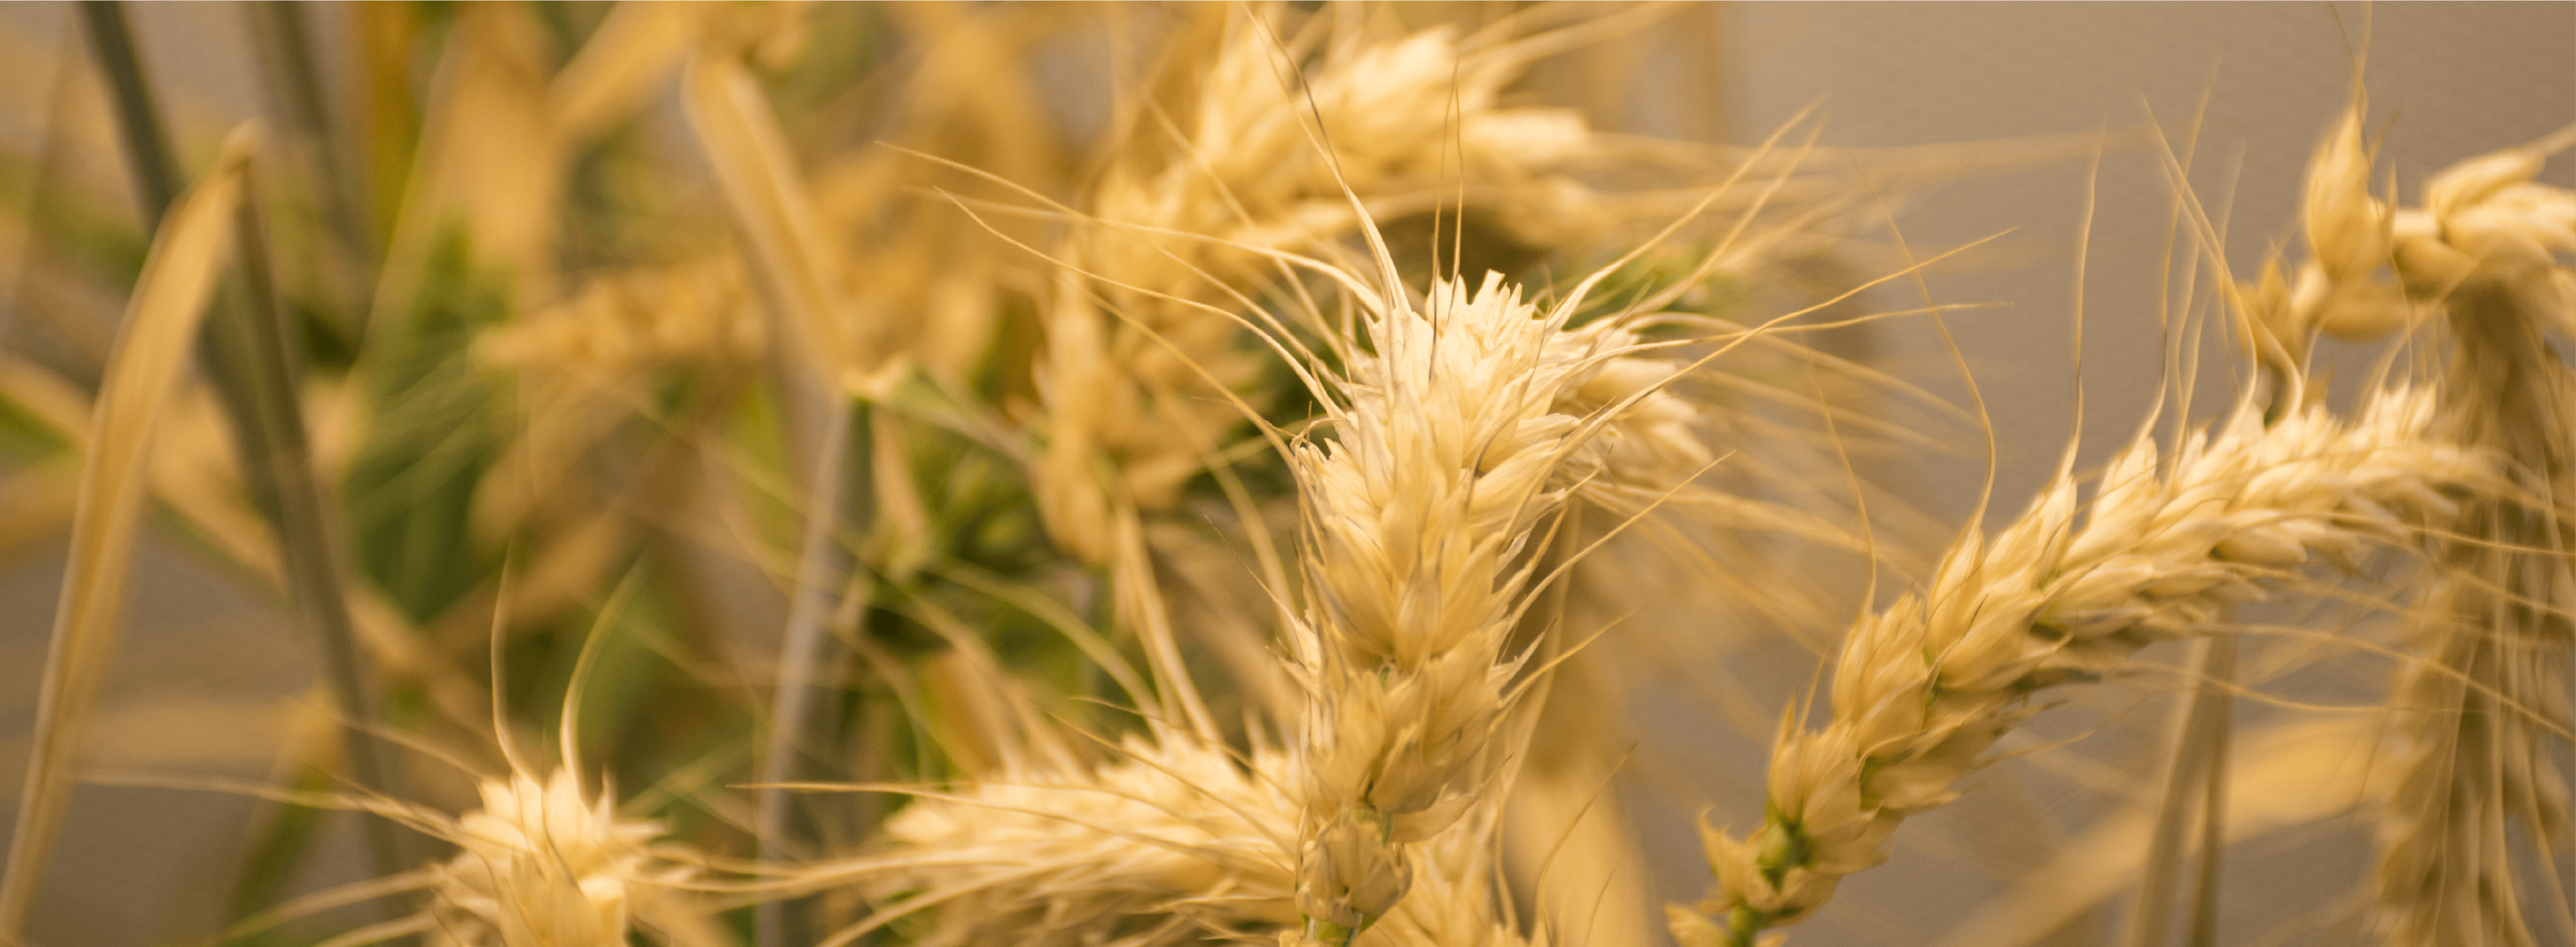 Gold colored wheat plant